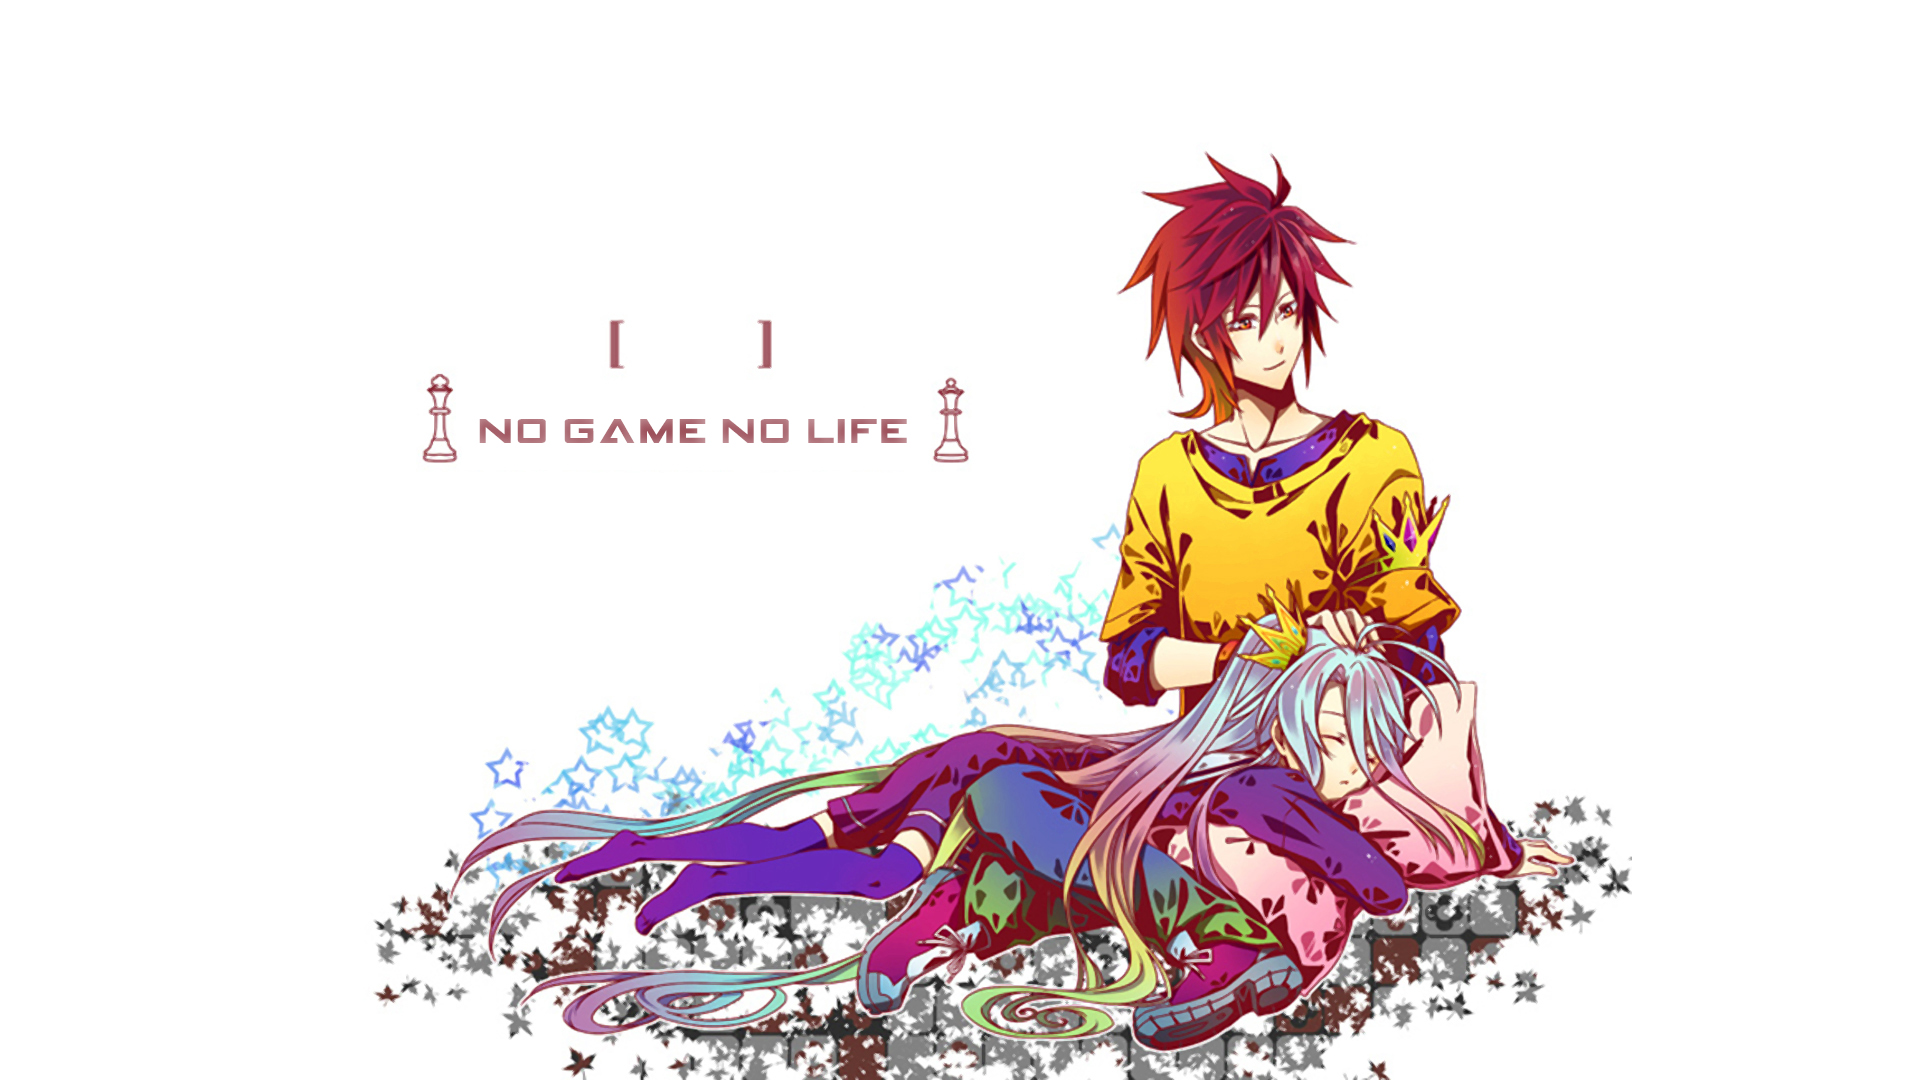 Shiro And Sora No Game No Life Anime 壁纸 38800371